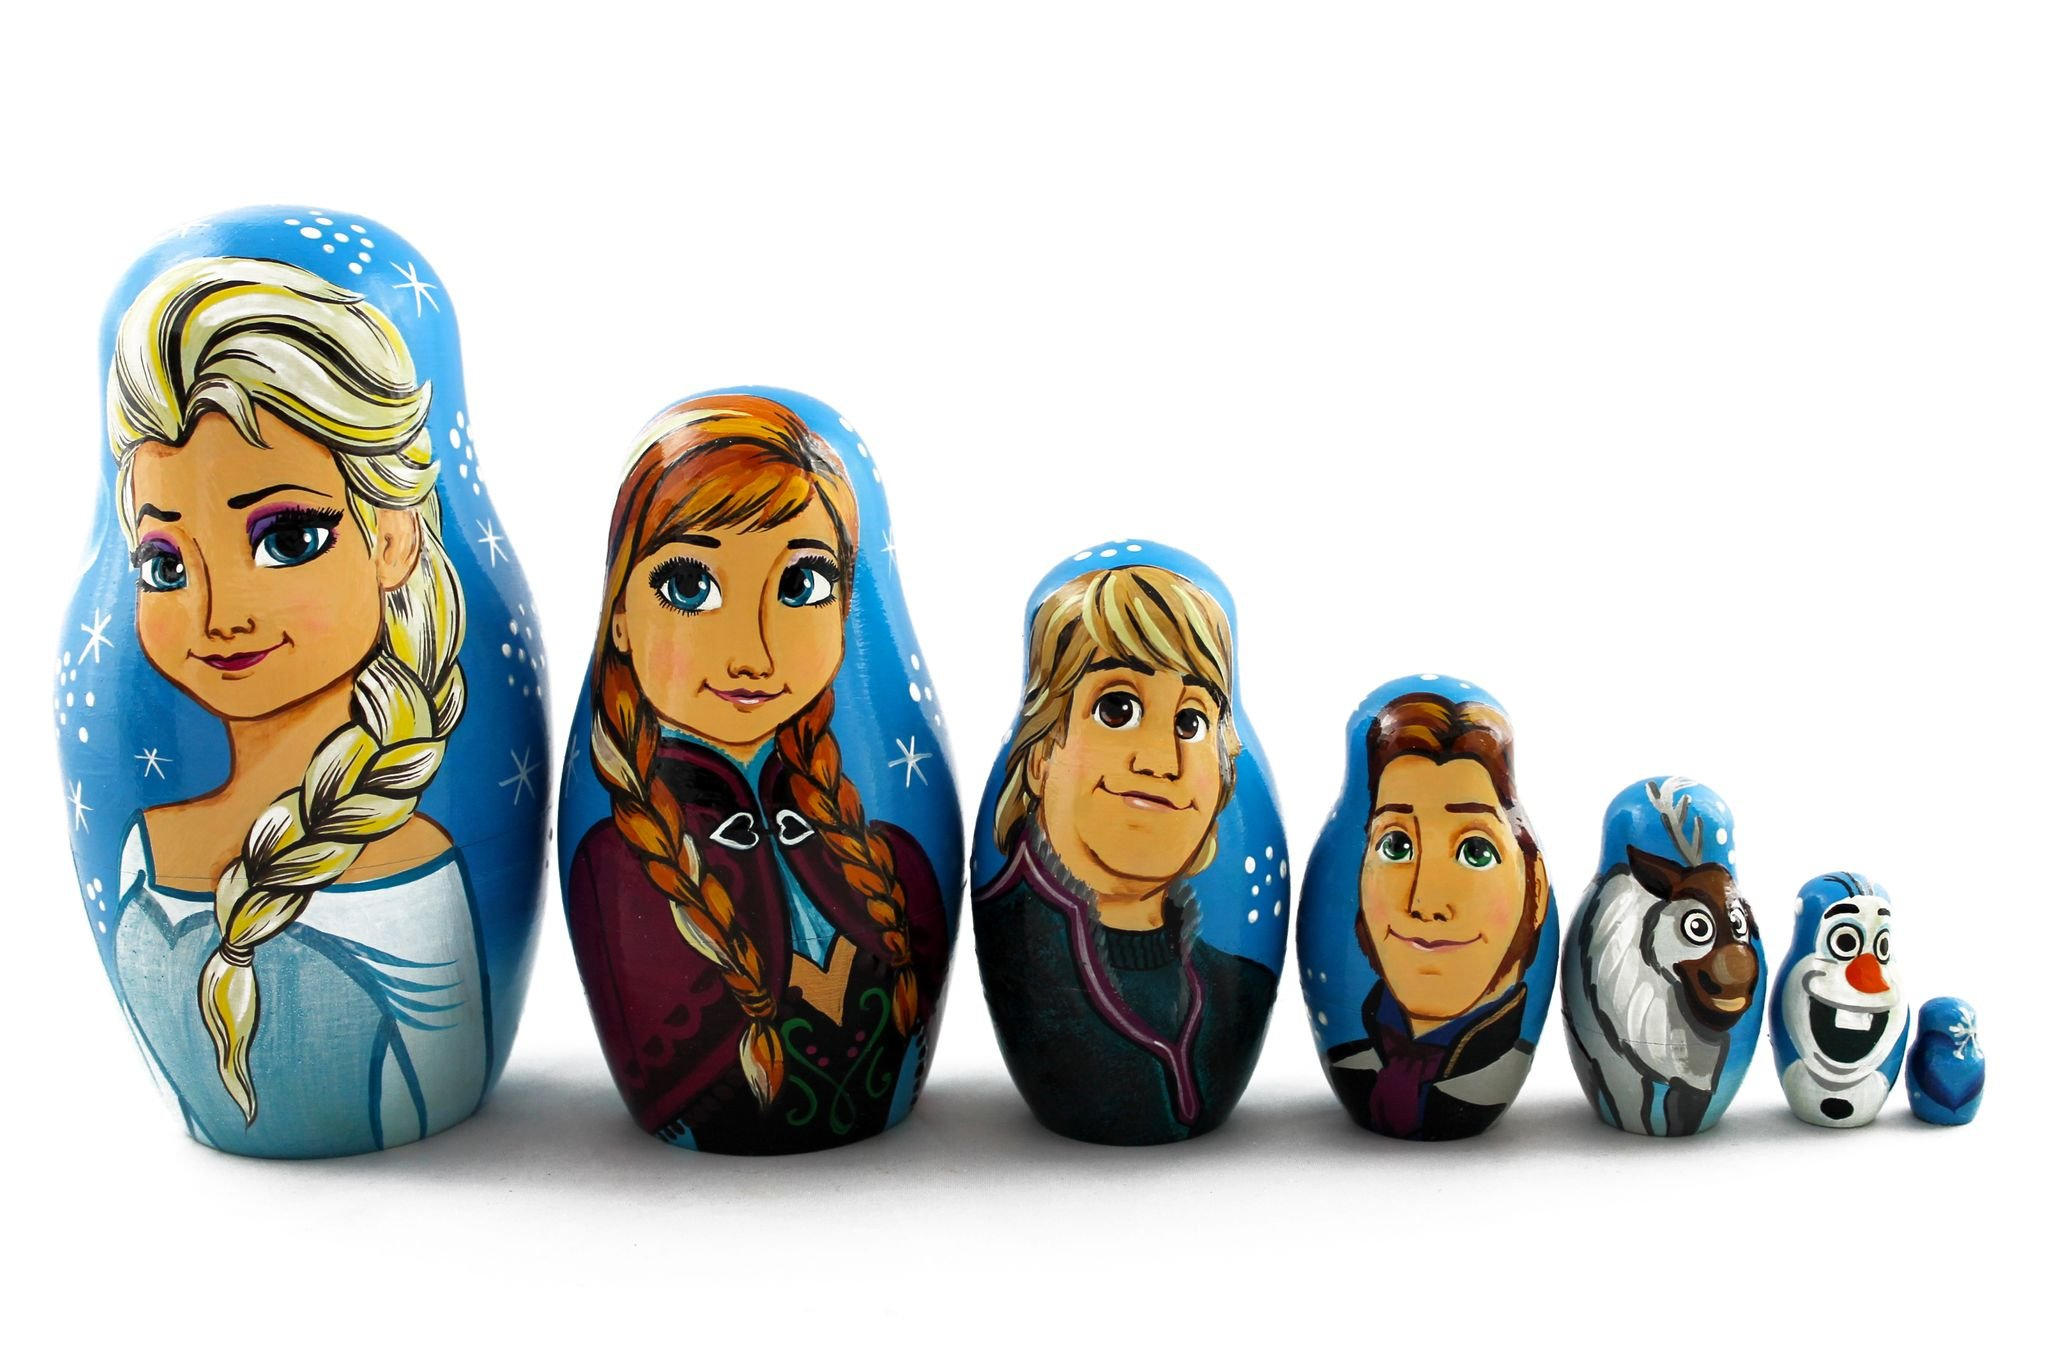 Matryoshka Russian Nesting Doll Babushka Beautiful Cartoon Characters Frozen Elsa Elza 7 Pieces Pcs Wooden Hand Painted Souvenir Craft Gift by MATRYOSHKA&HANDICRAFT